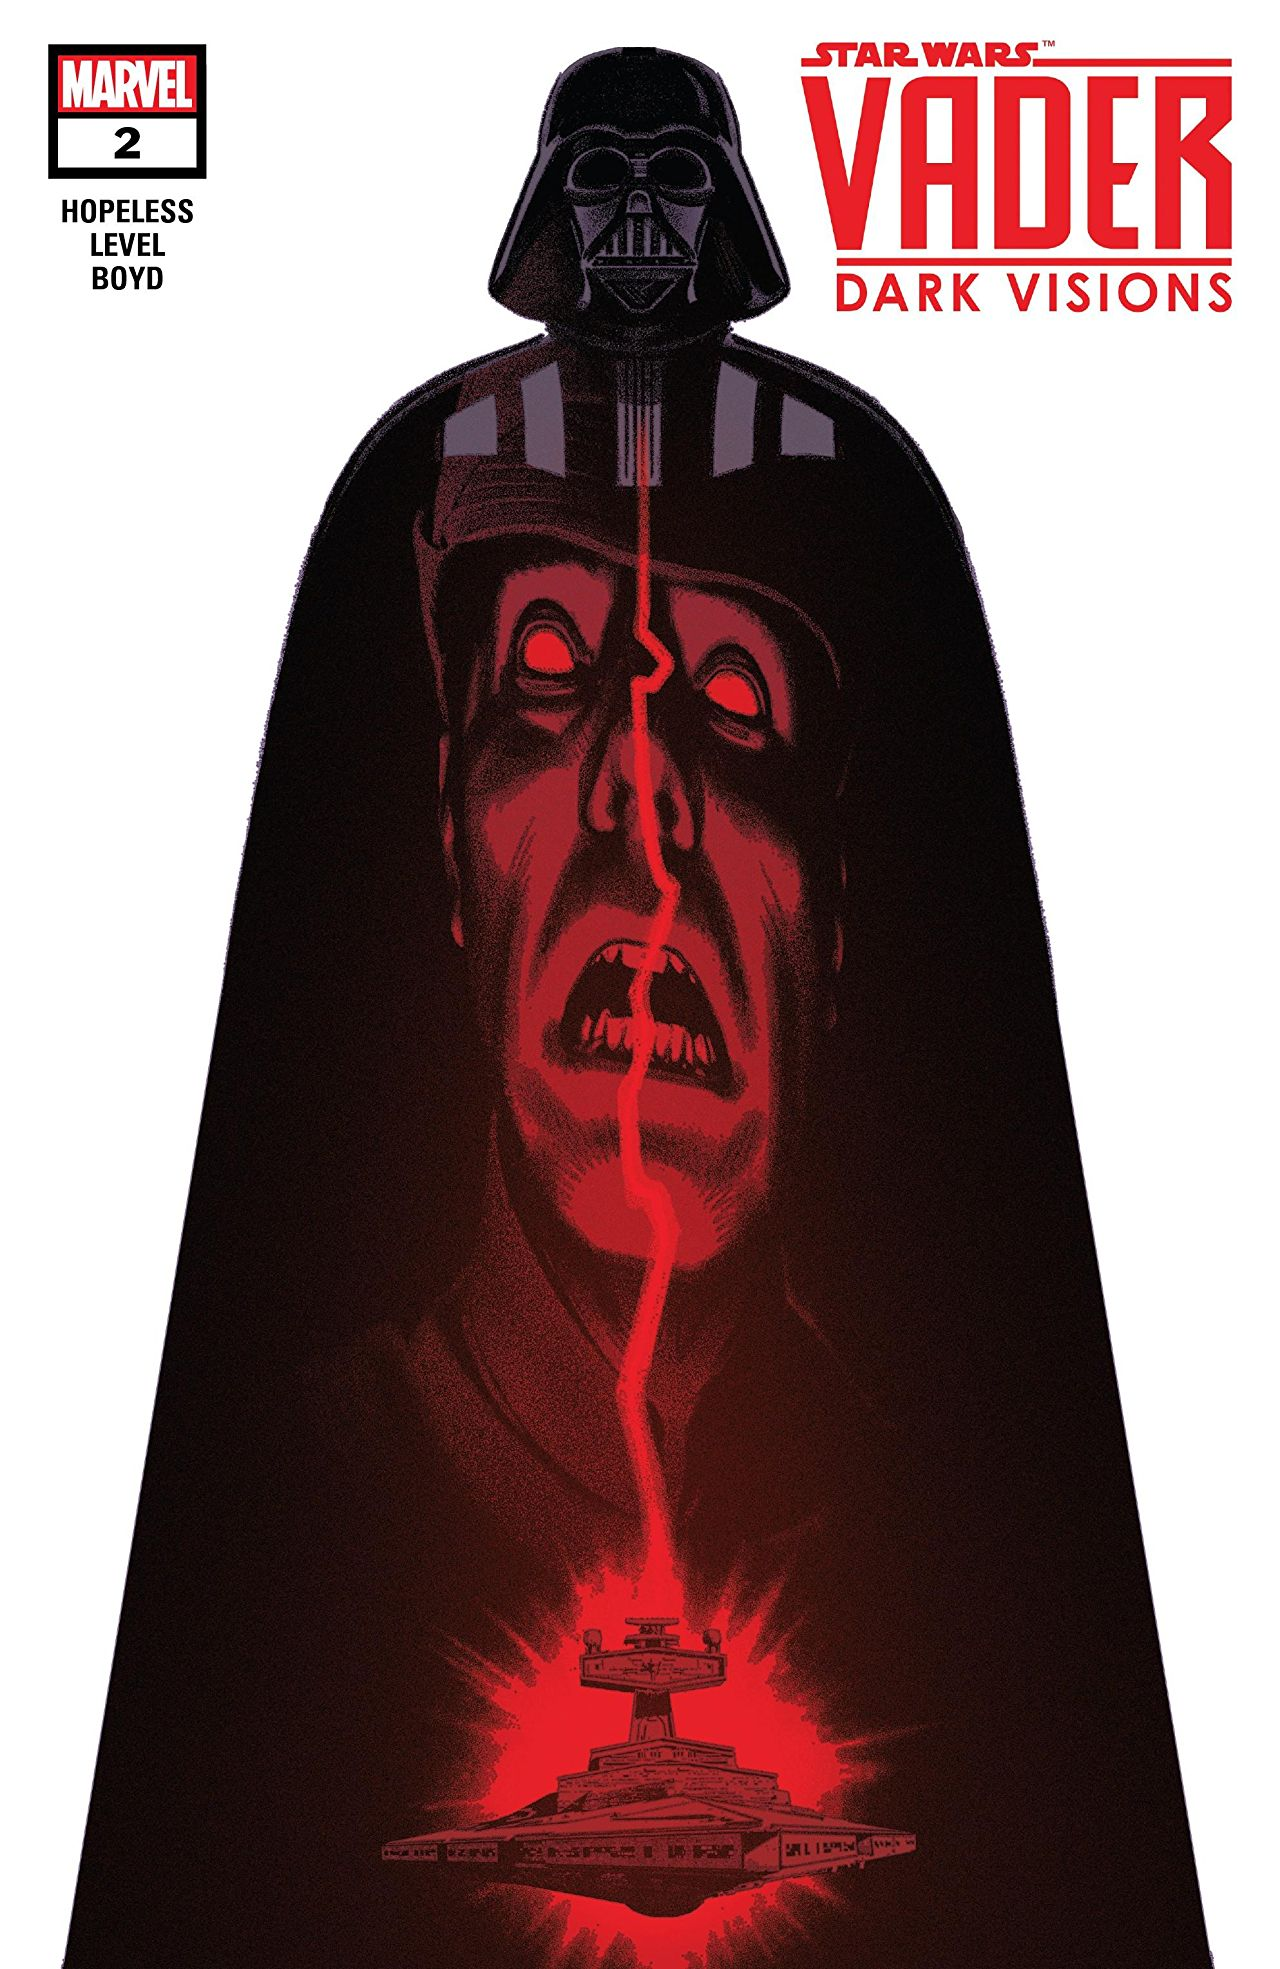 STAR WARS VADER DARK VISIONS #2 (OF 5) Preview – Pop Culture